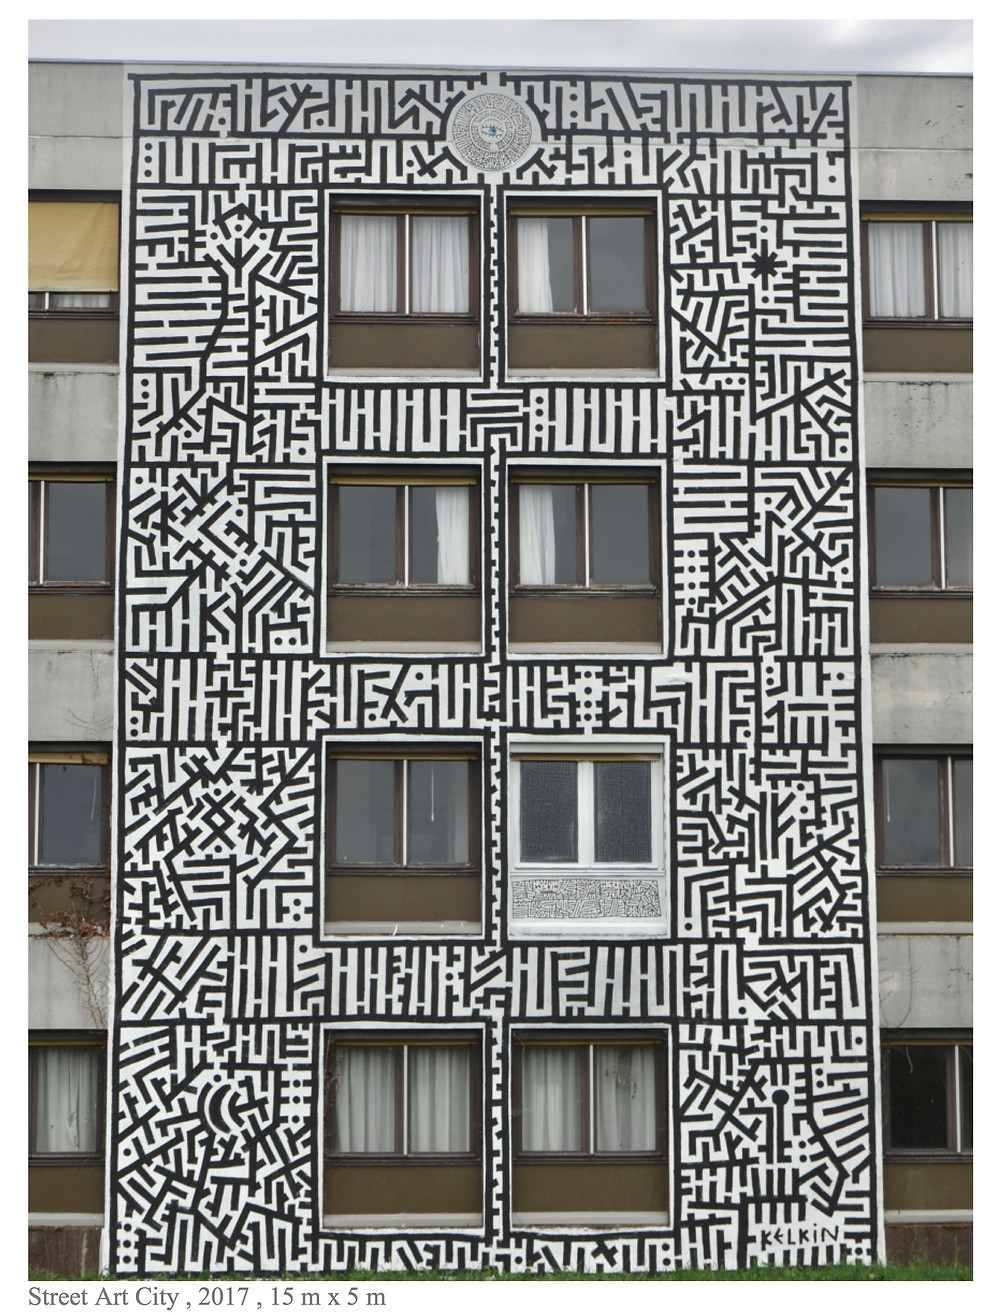 Image Of A Building With MazeArt By KELKIN